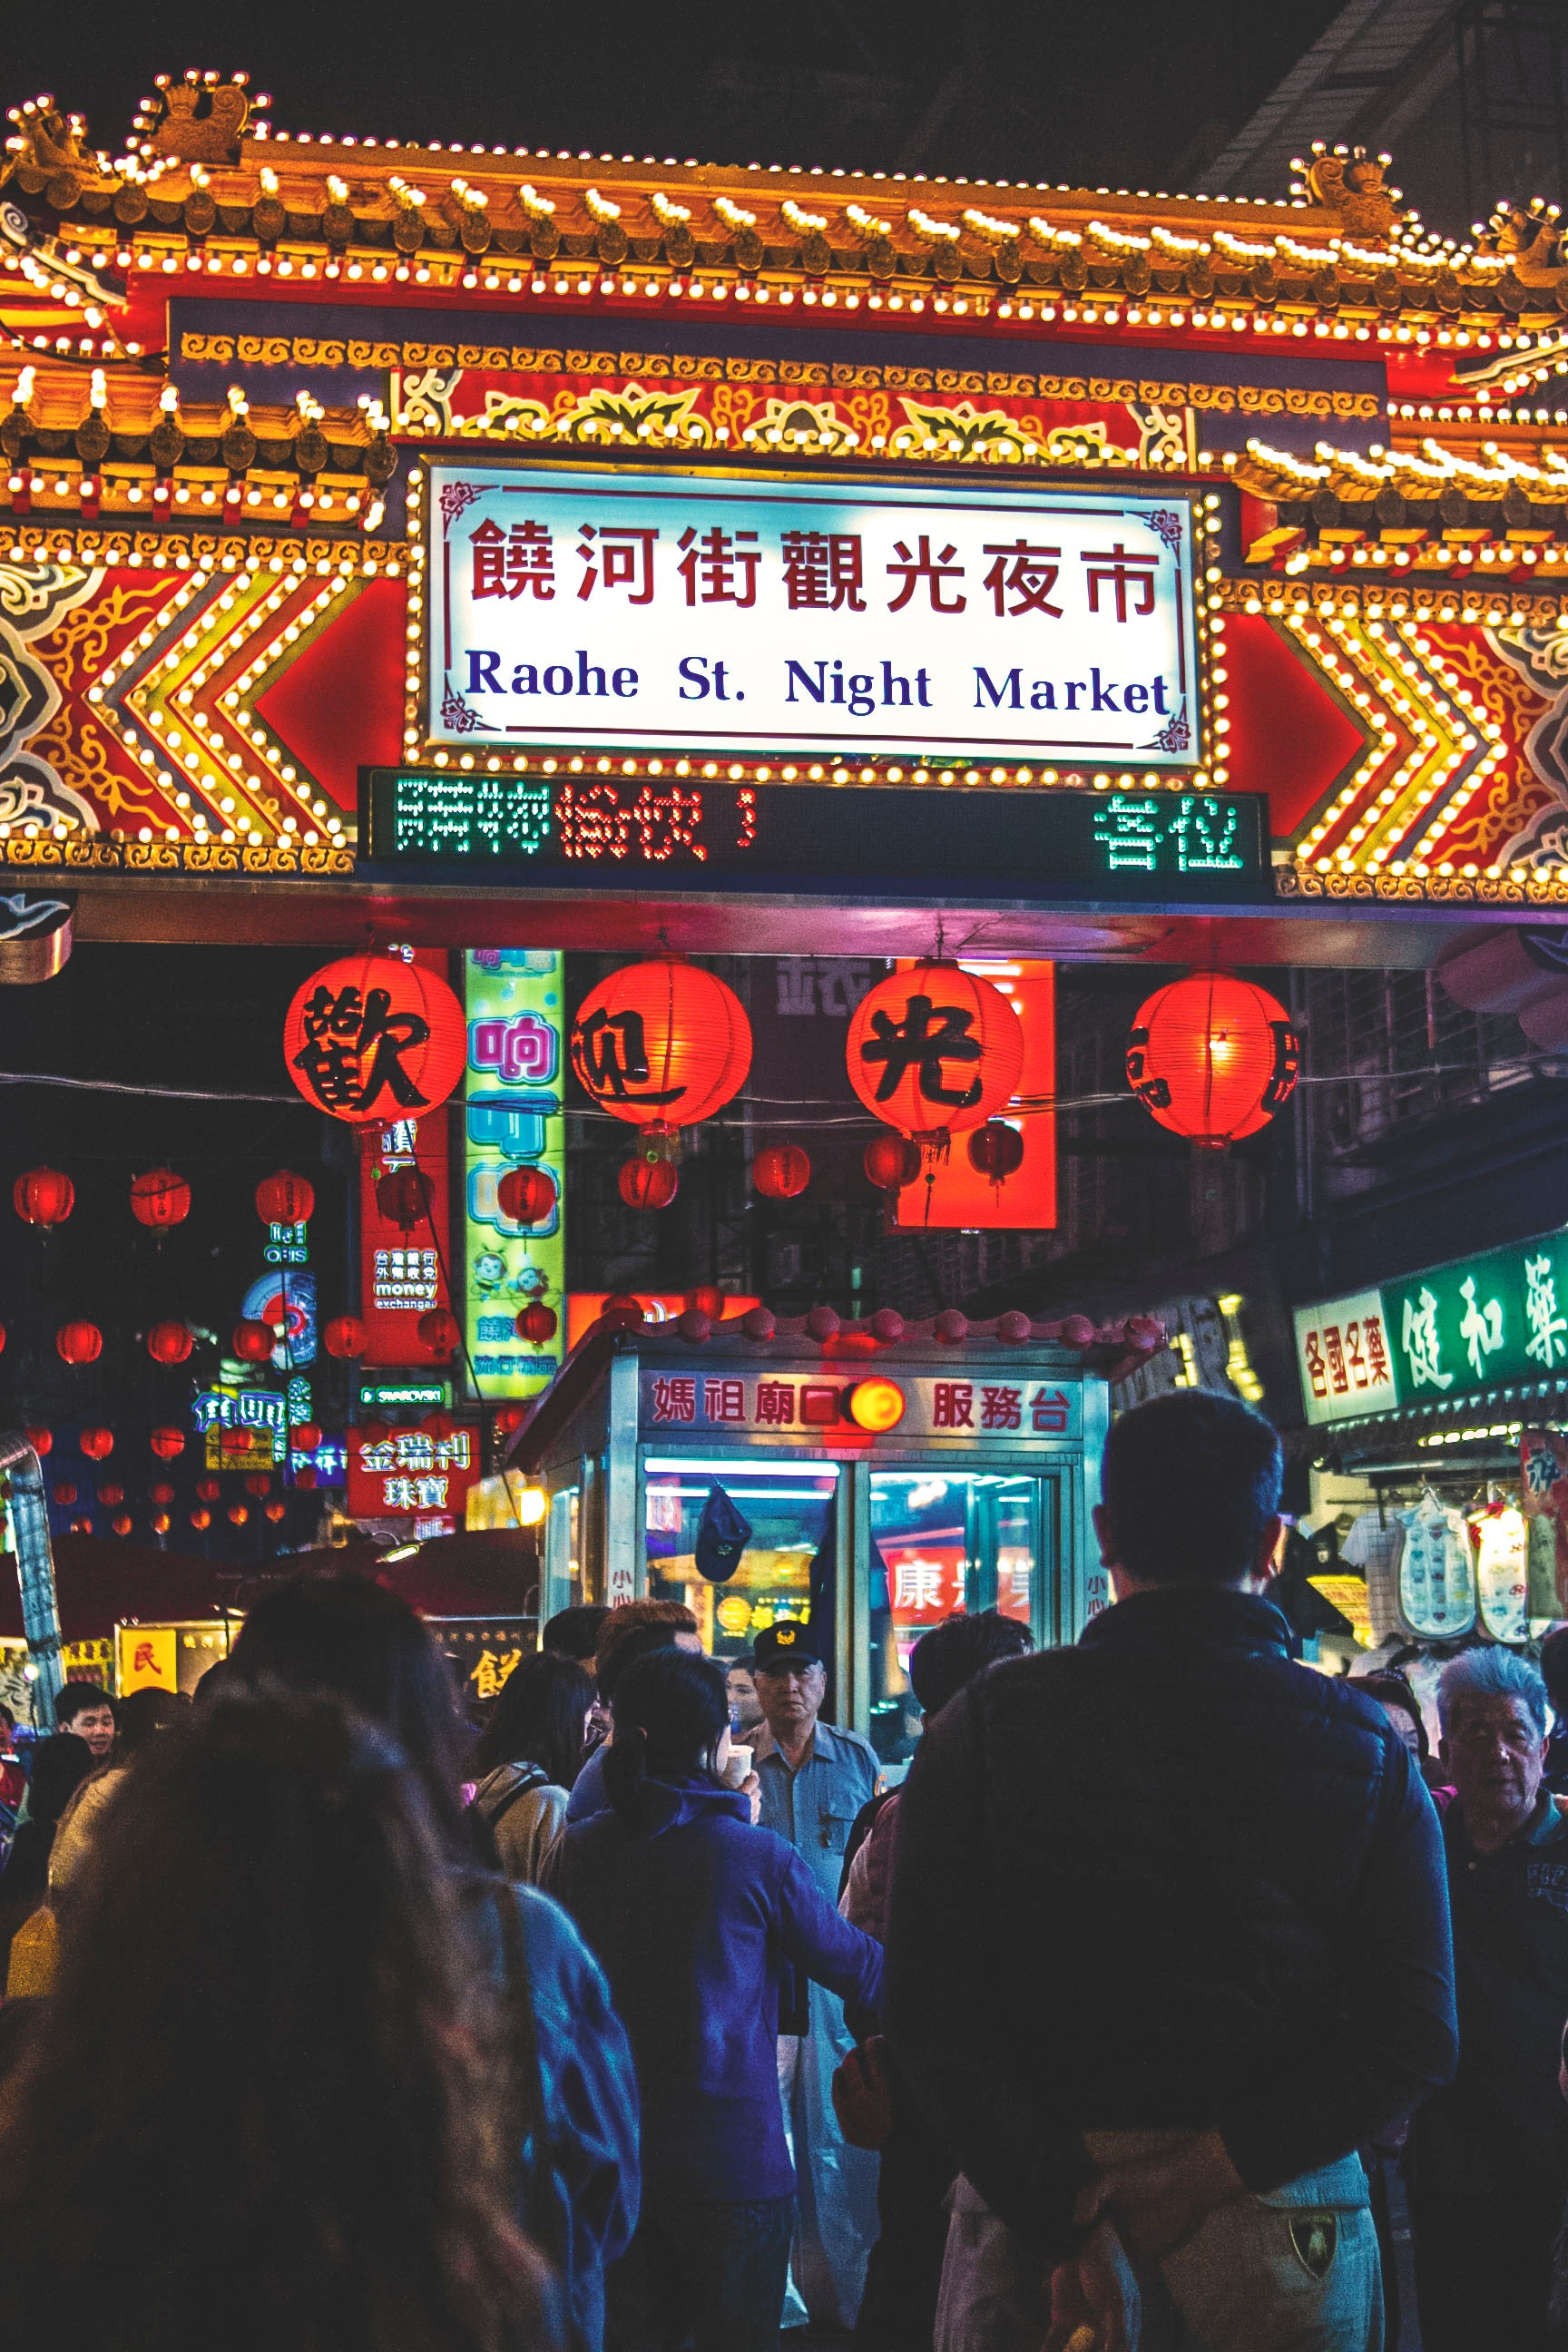 View of raohe st. night market arch with kanji texts and group of people photo